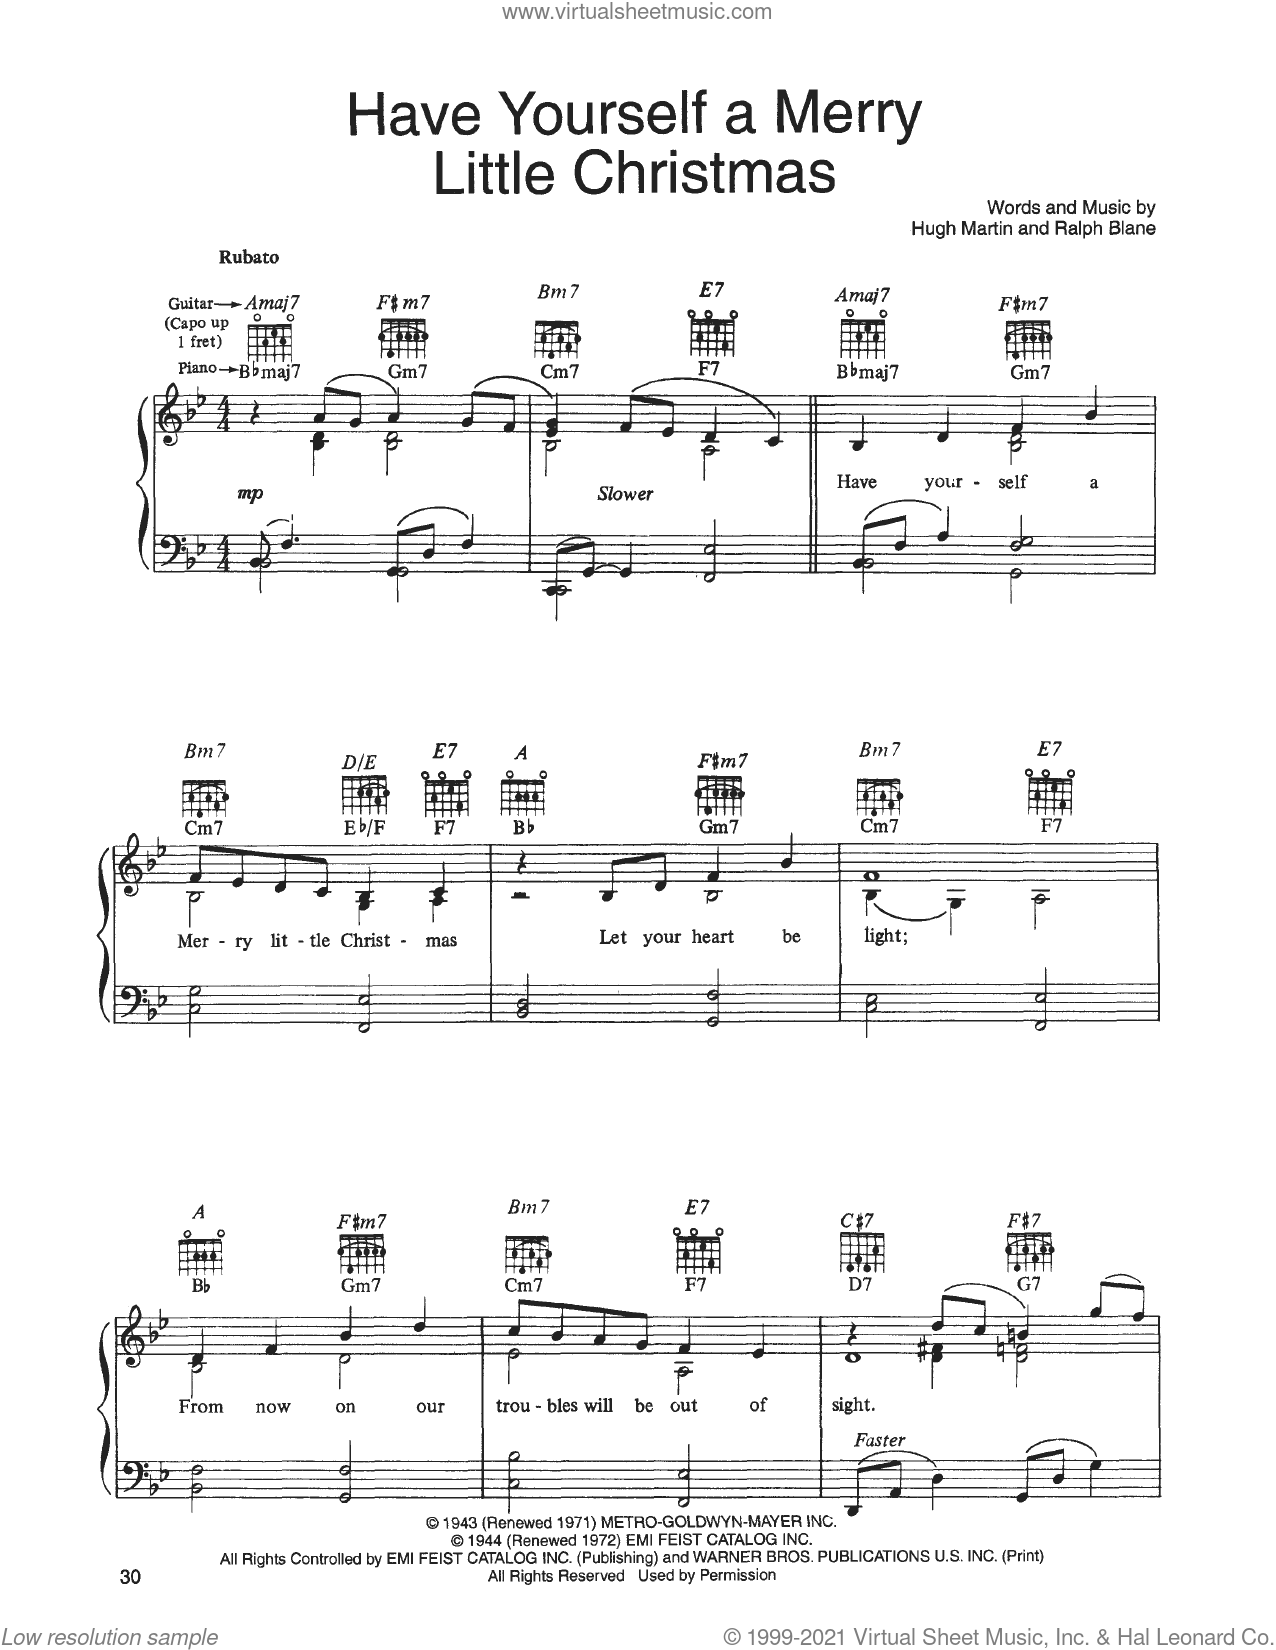 Have Yourself A Merry Little Christmas (from A Christmas Together) sheet music for voice, piano or guitar by John Denver and The Muppets, Hugh Martin and Ralph Blane, intermediate skill level